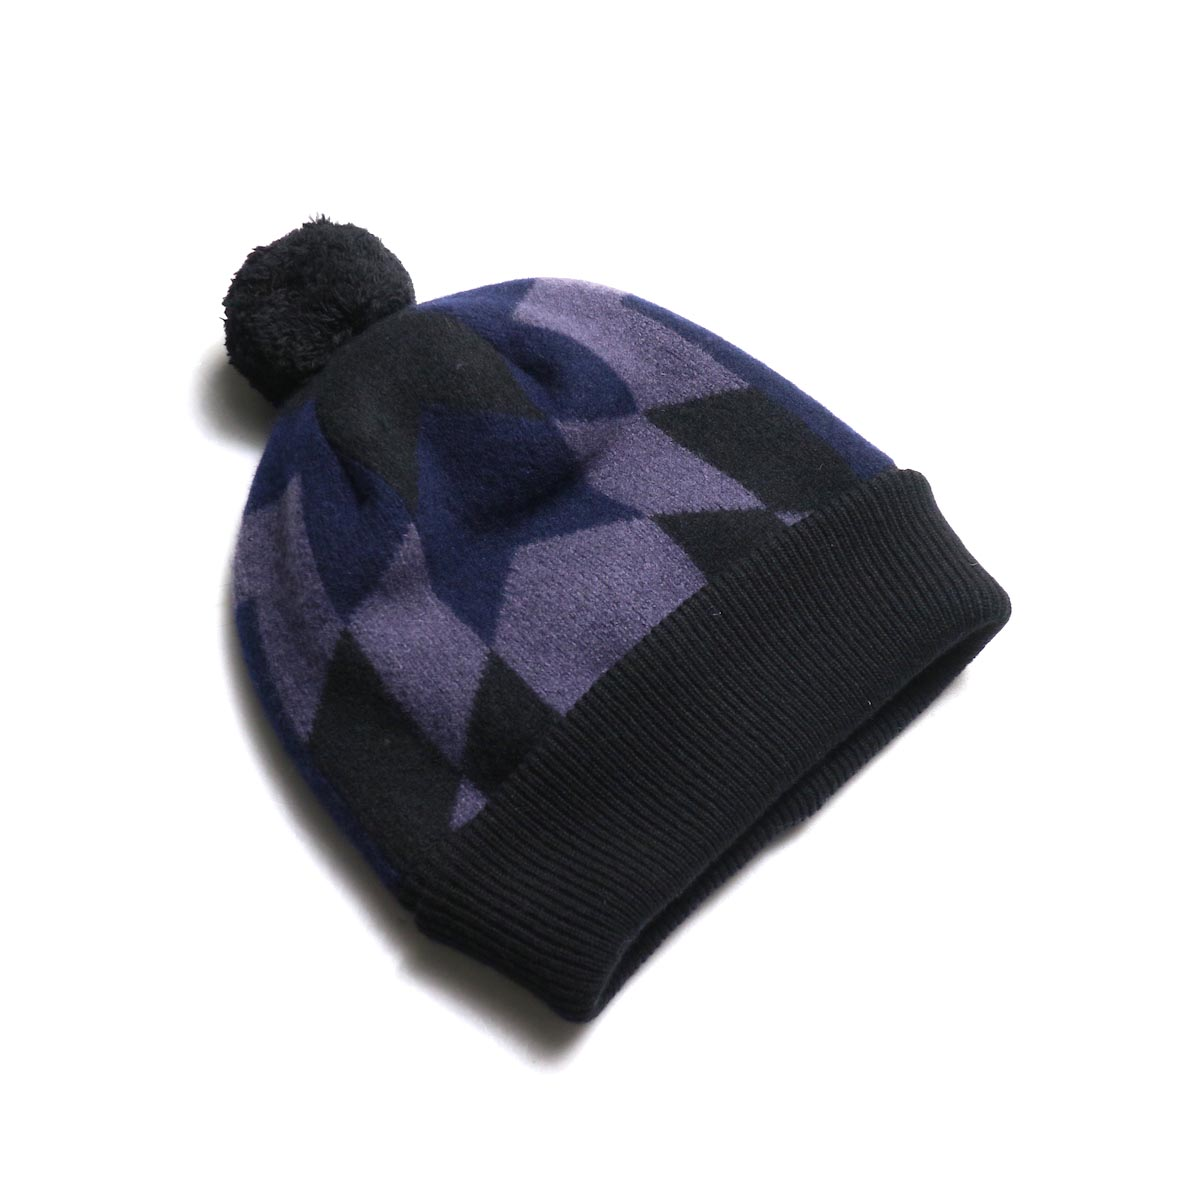 The Soloist / sk.0004AW19 ski cap. -Black × Mid Night × Eggplant 全体像